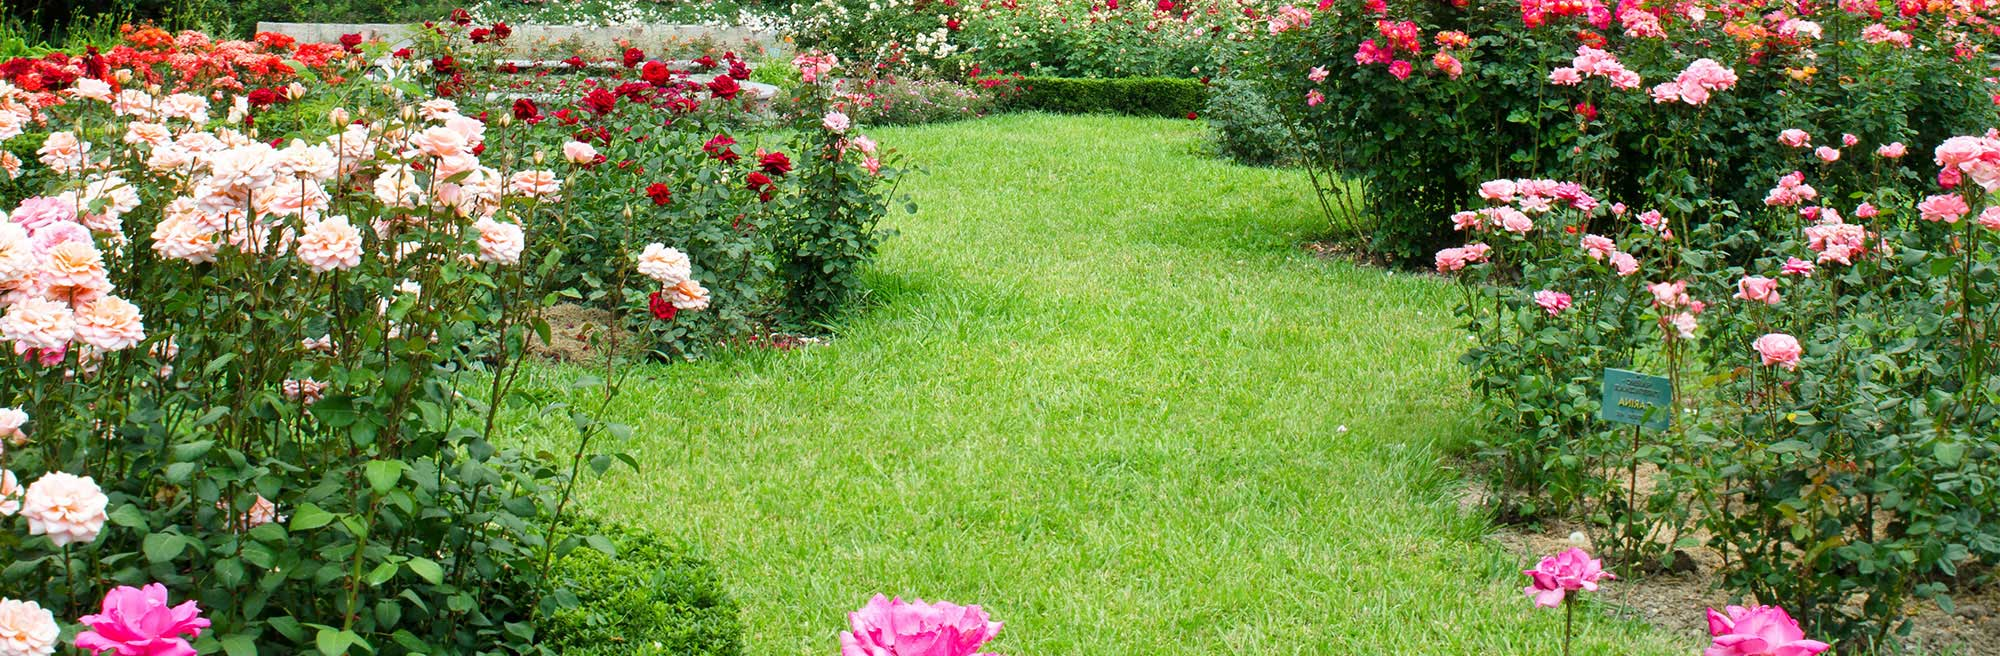 Landscaping with bushes of pink and red flowers